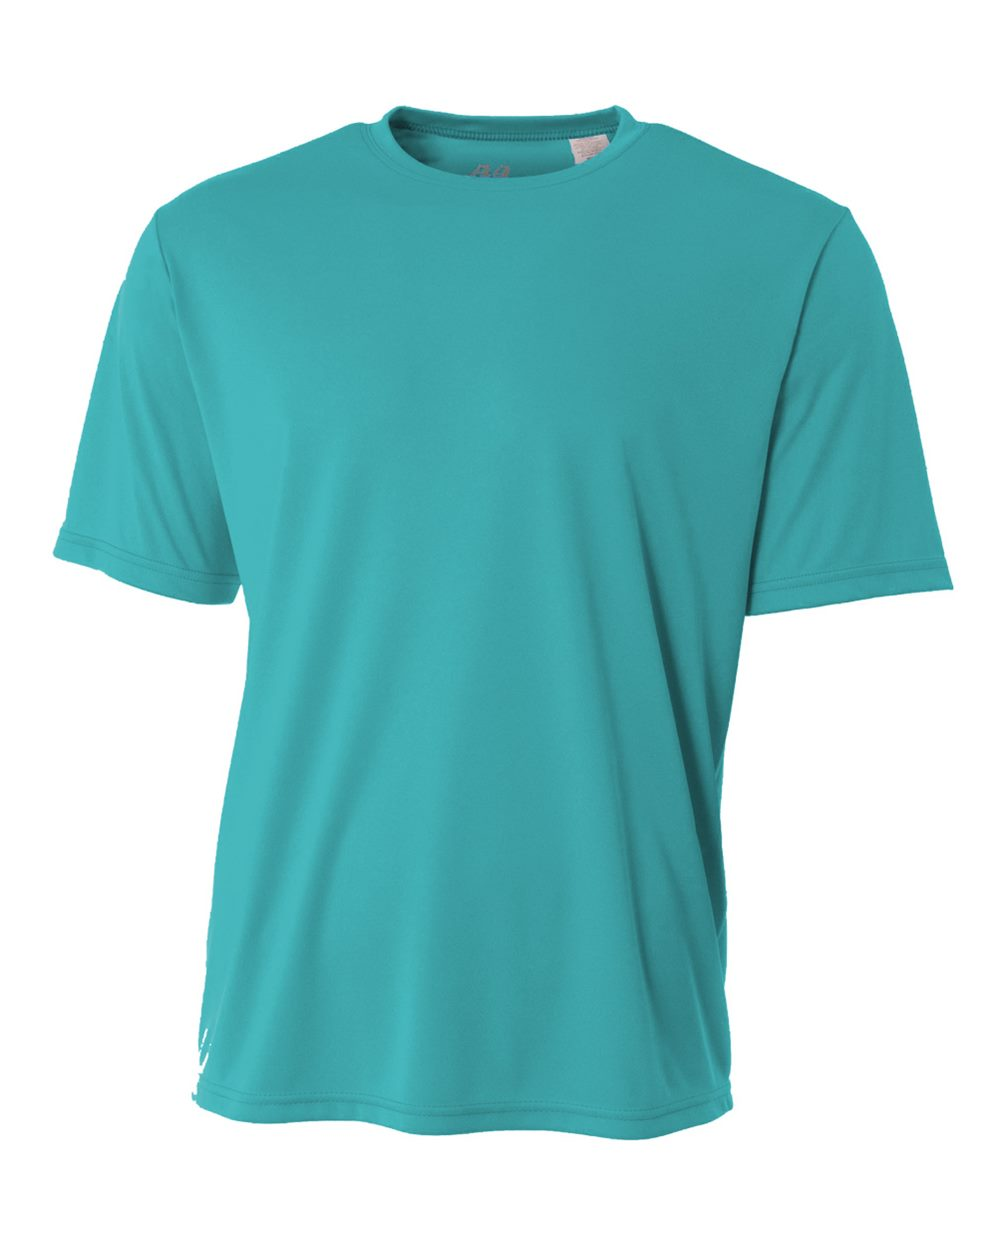 mw-polo-teal.jpg